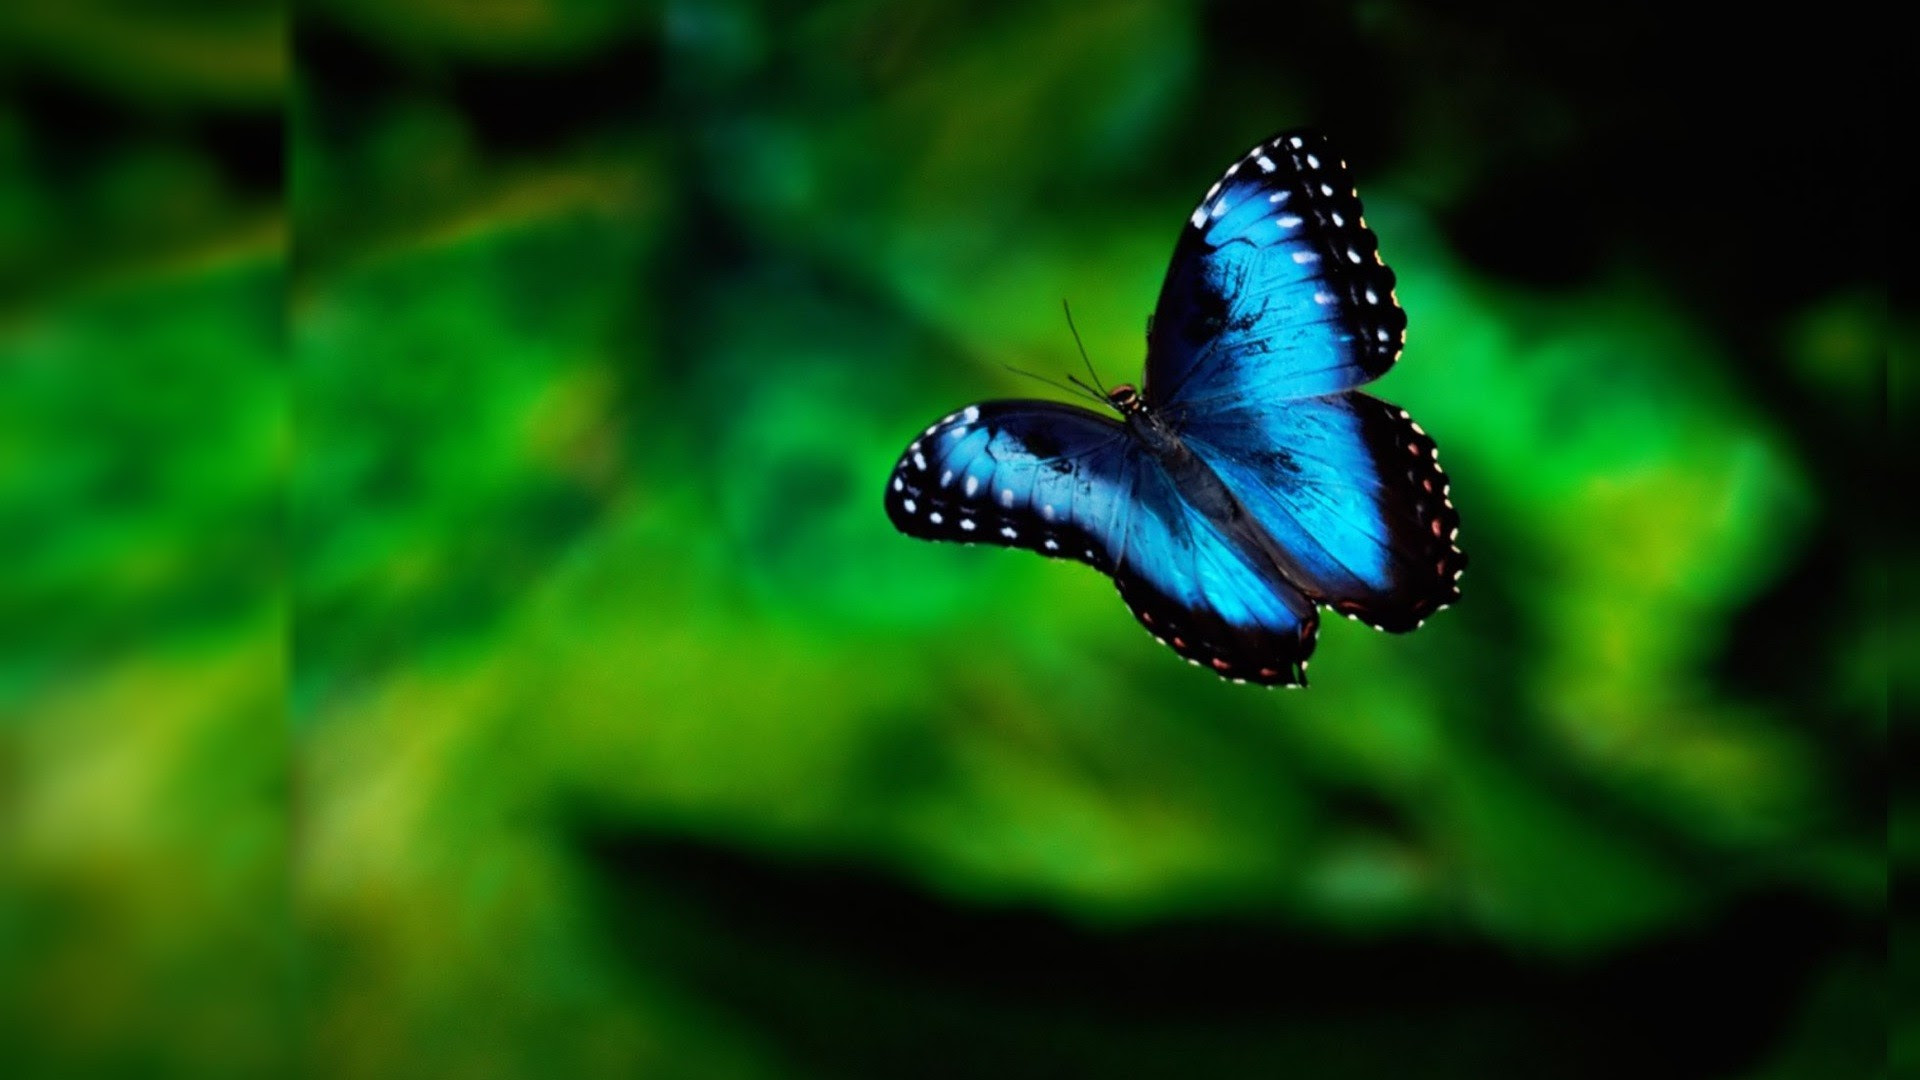 Black Butterfly Wallpaper (68+ images)